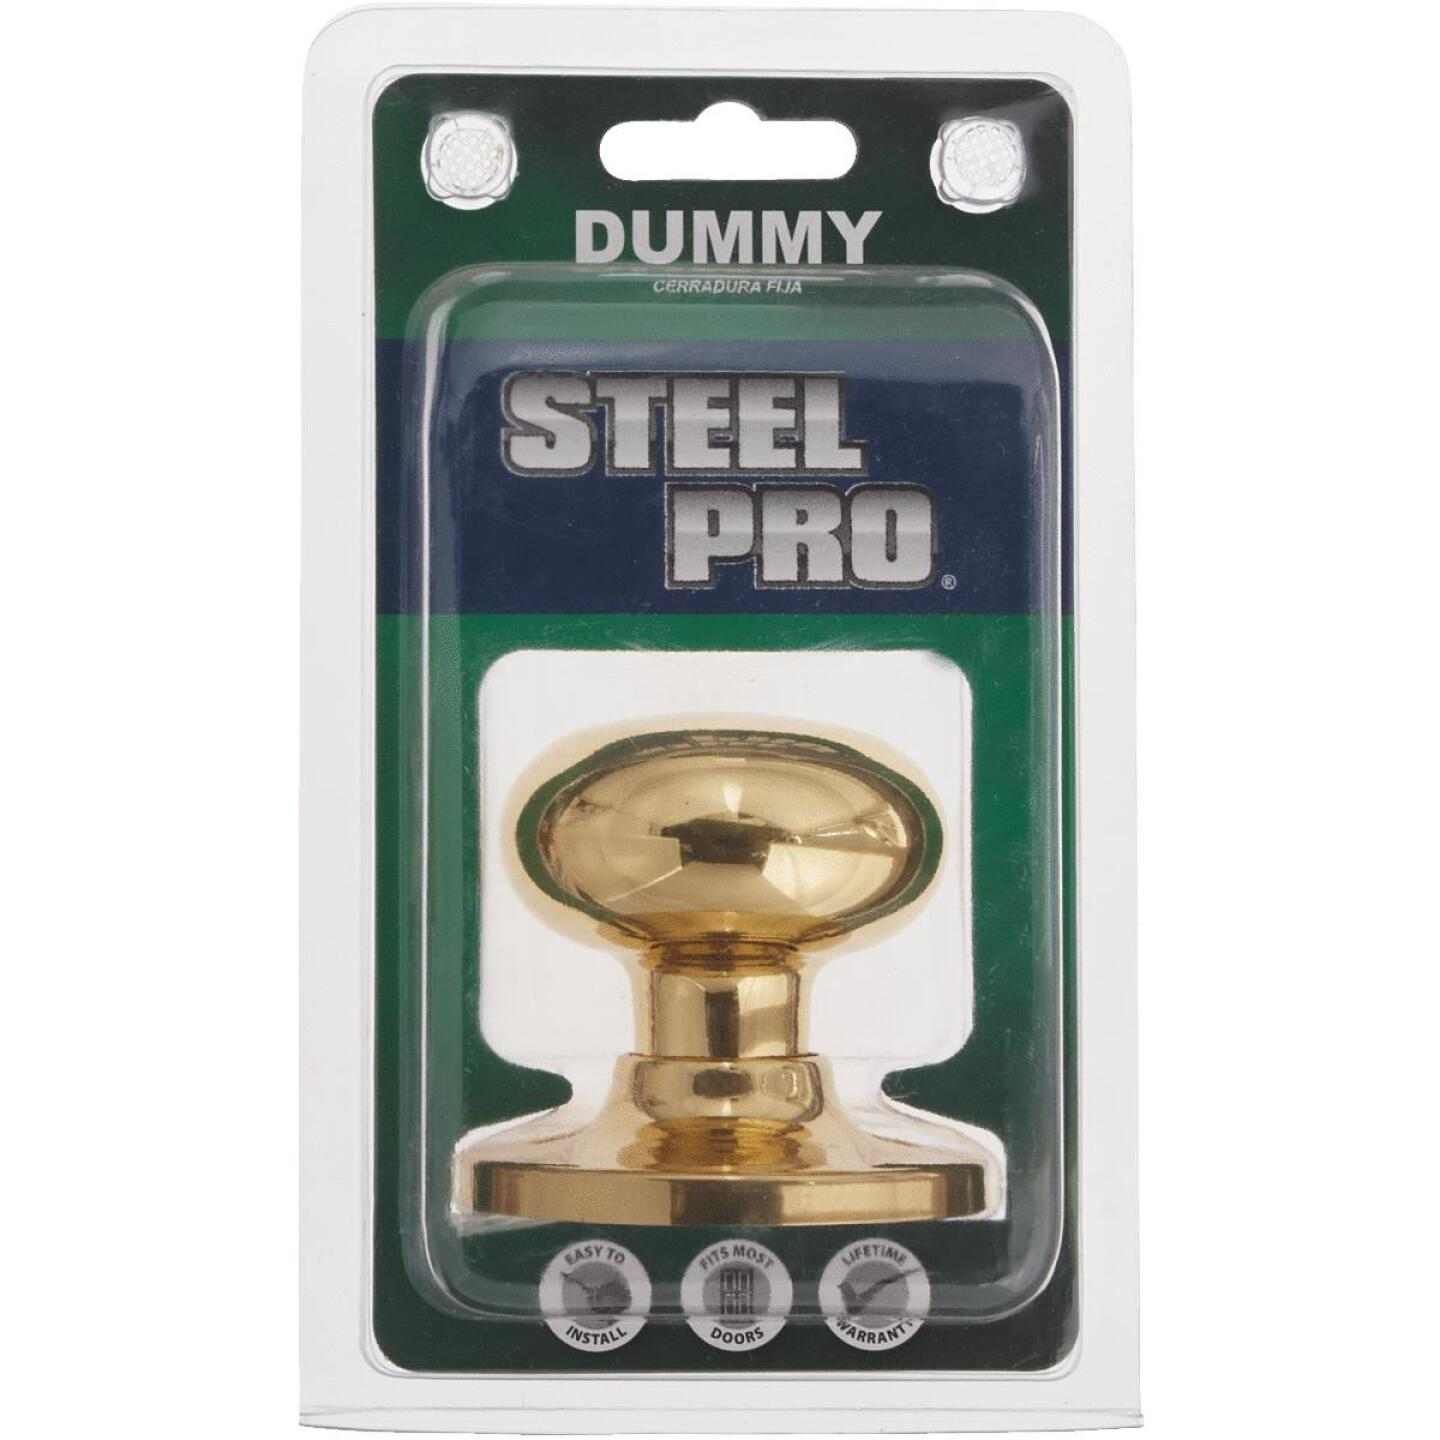 Steel Pro Polished Brass Dummy Door Knob Image 2